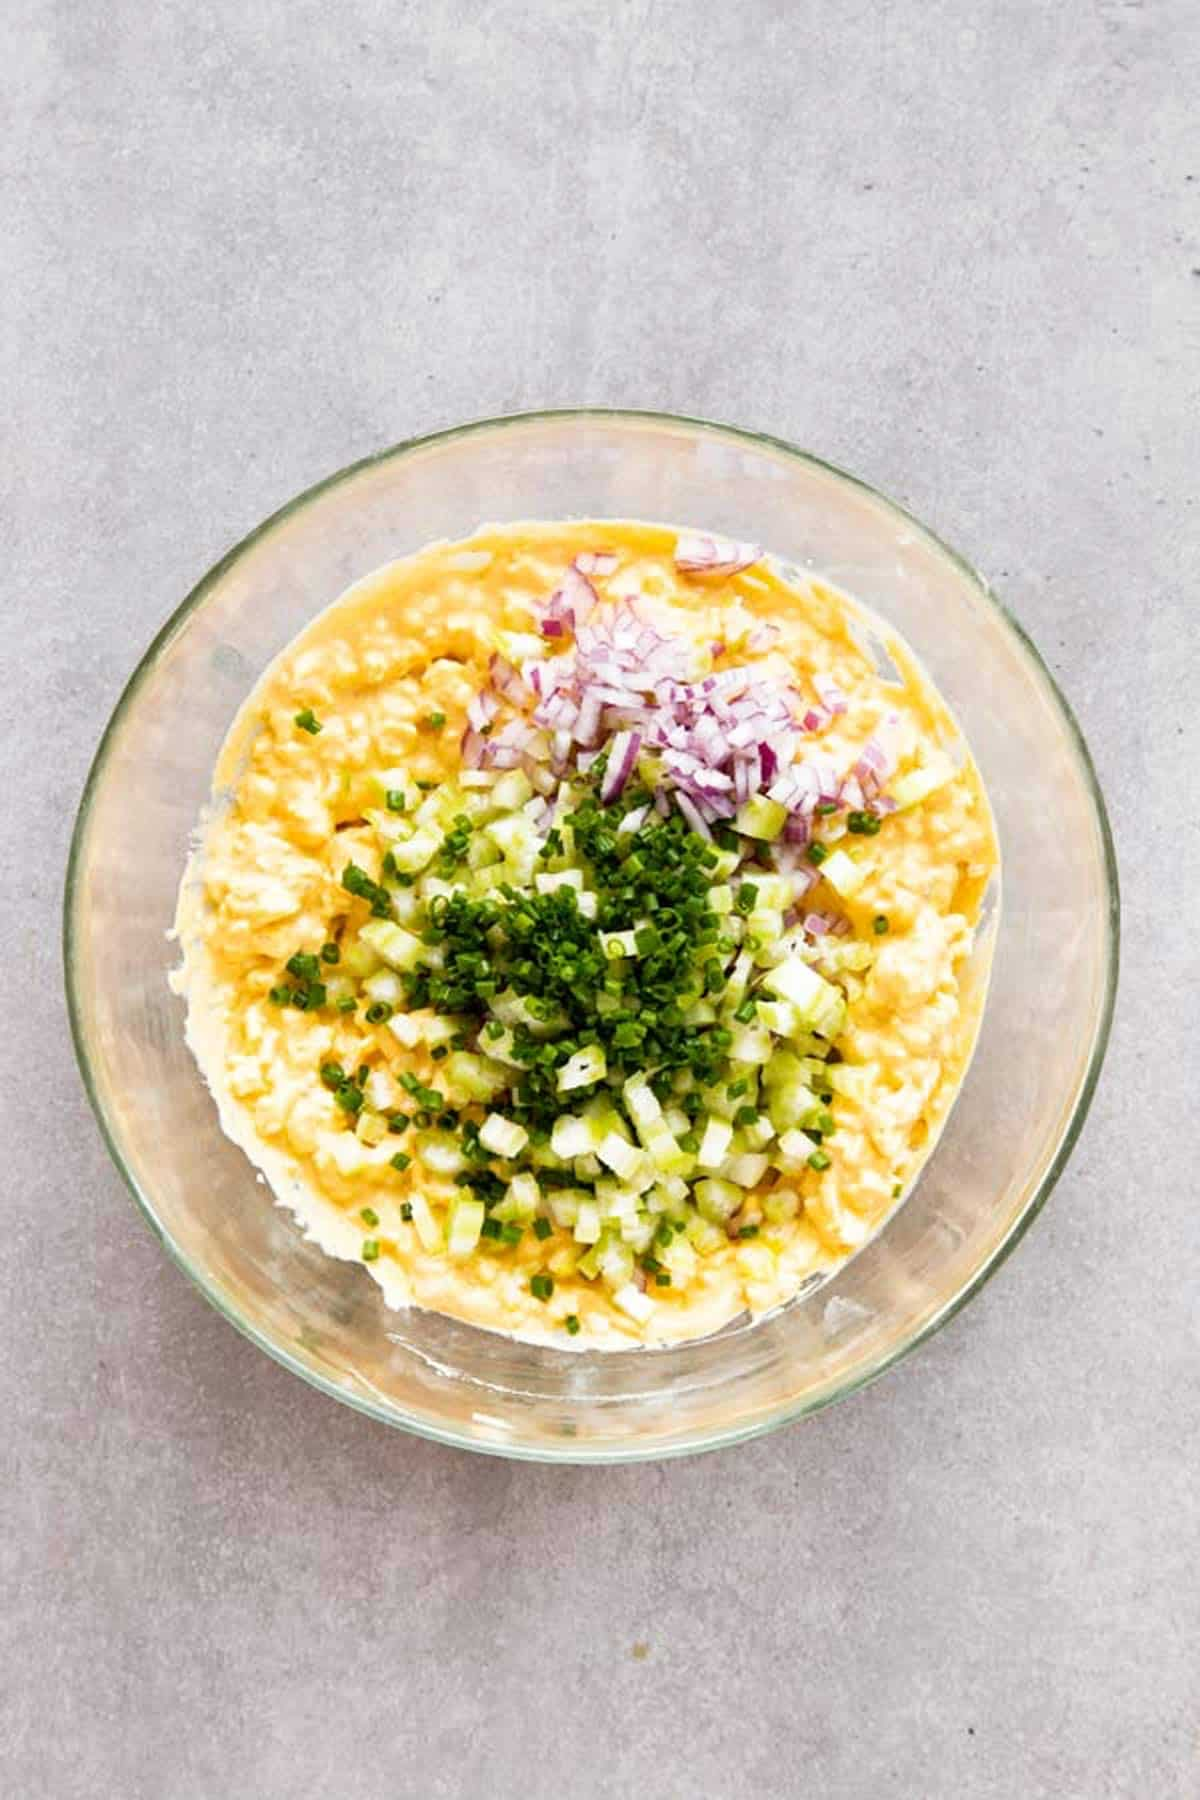 top down view on bowl with ingredients for egg salad